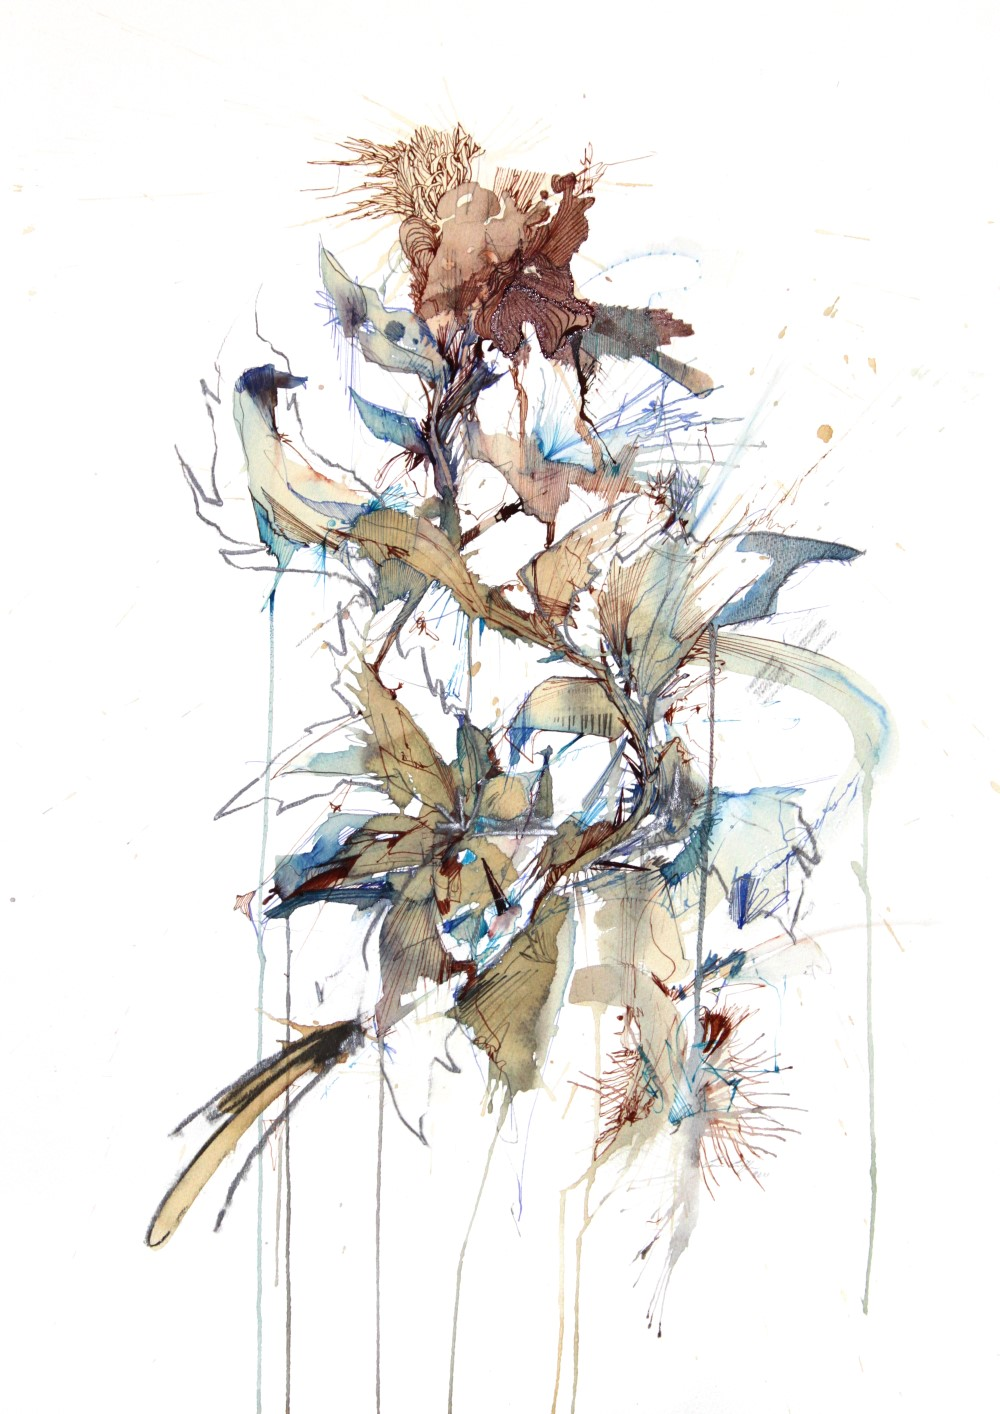 Torment by Carne Griffiths